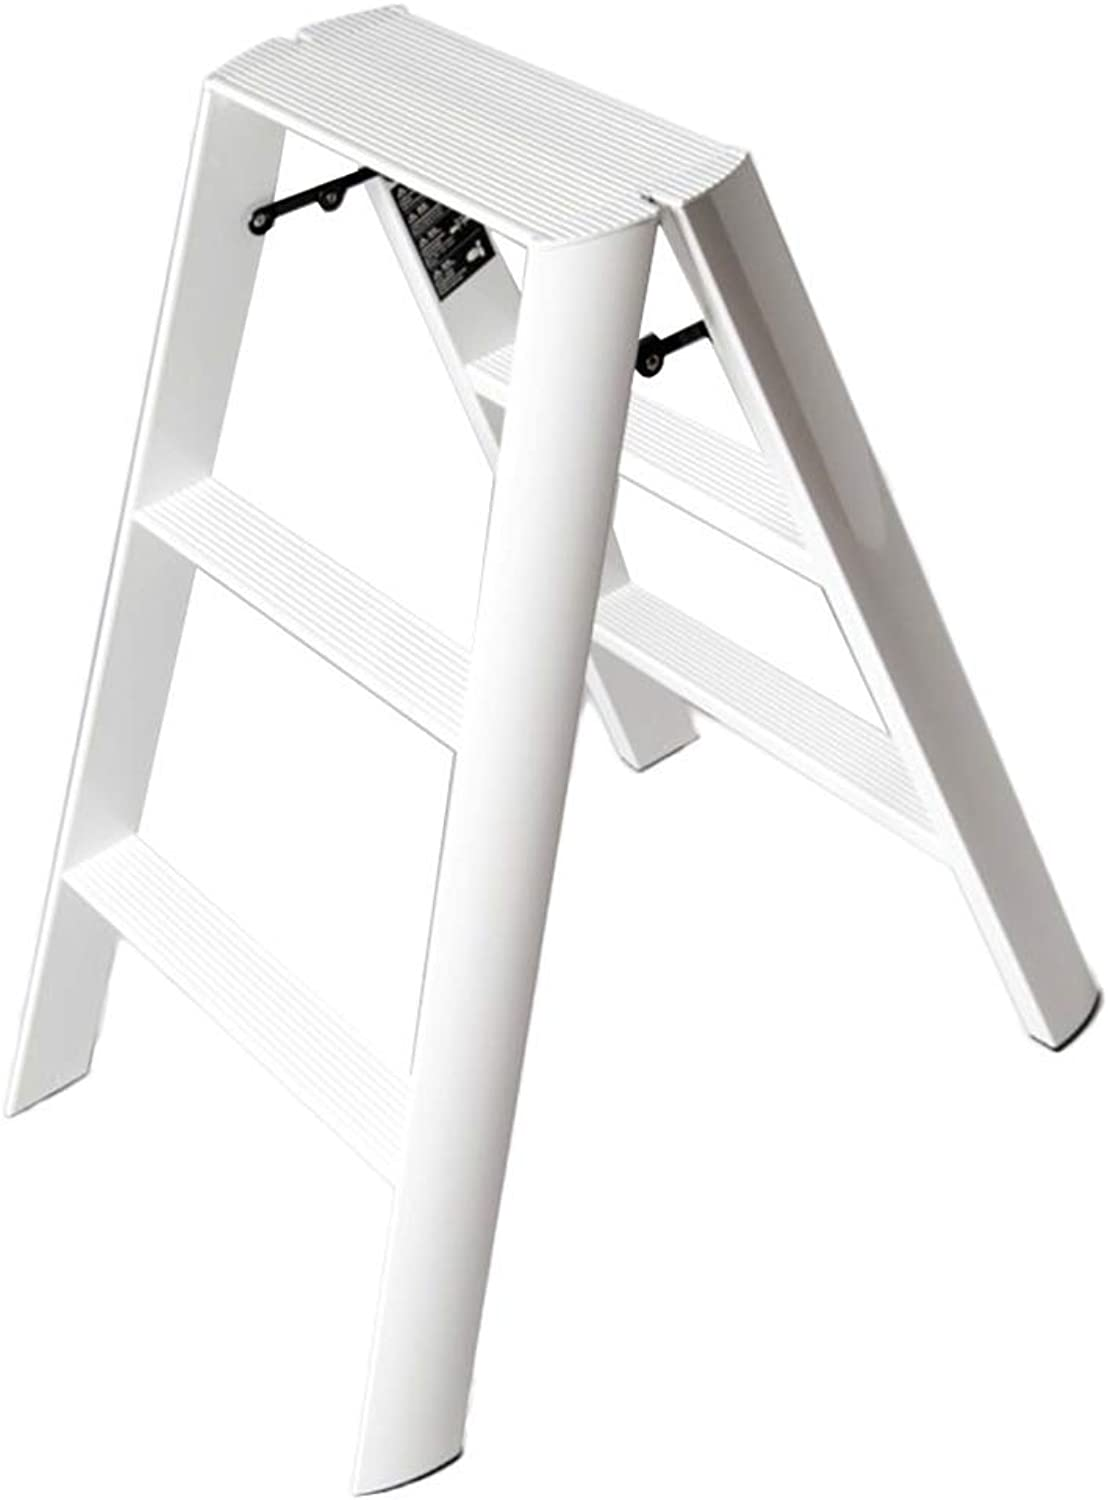 BXJ 3 Steps Ladder Stool Household Folding Indoor Aluminum Alloy Thickening Ladder